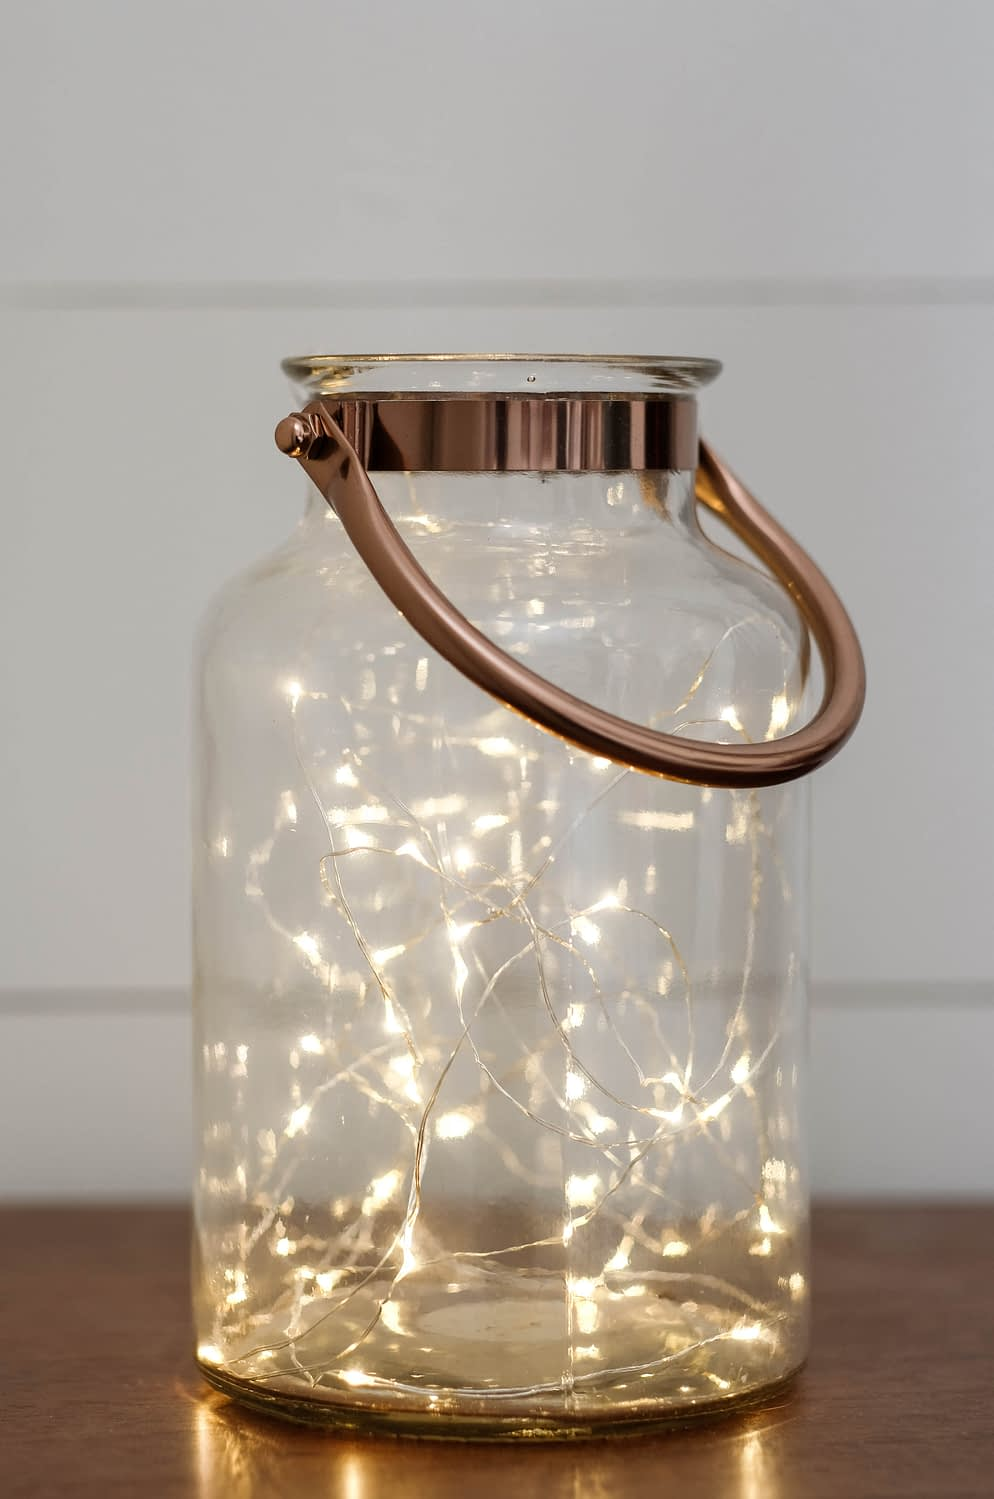 Christmas decor idea using a lantern filled with twinkle lights